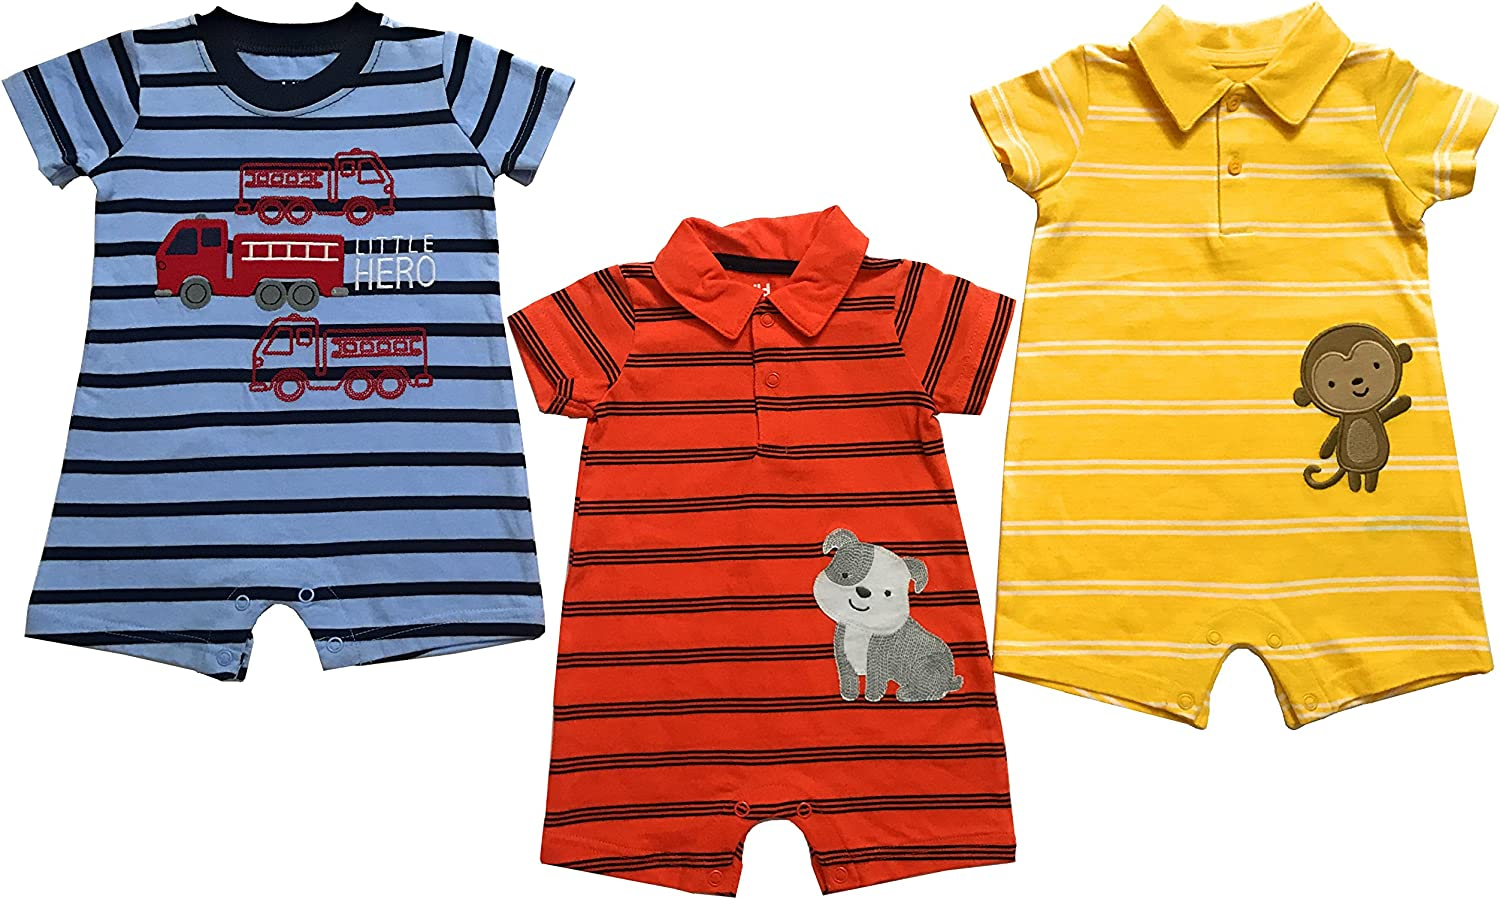 3 Baby Boys' Romper Outfits Blue, Orange, Yellow. Fall Season Outfits 0-3 Months